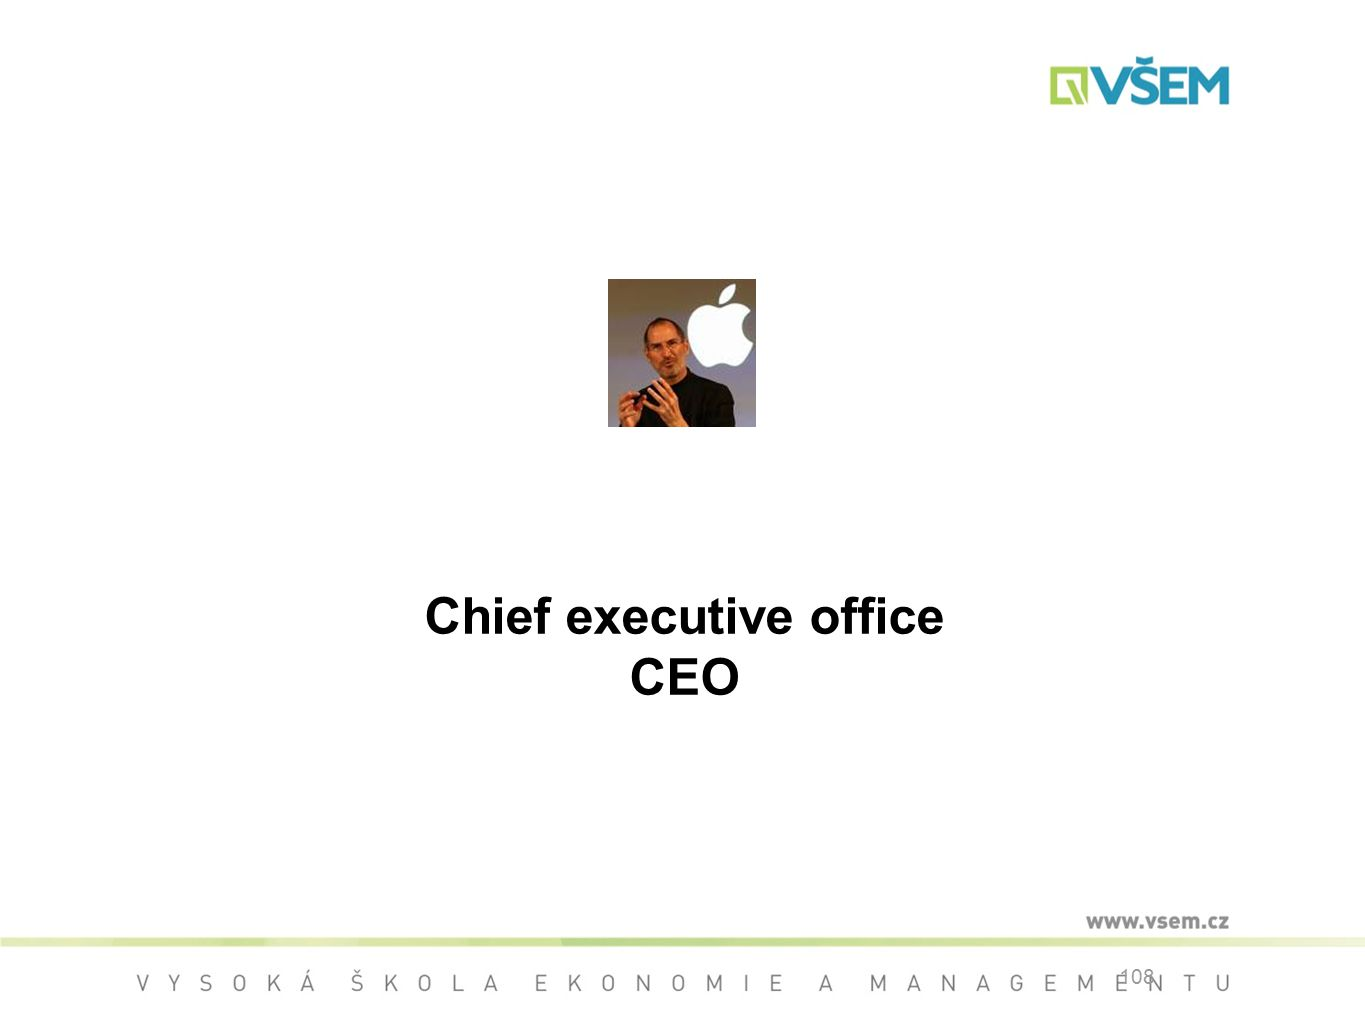 Chief executive office CEO